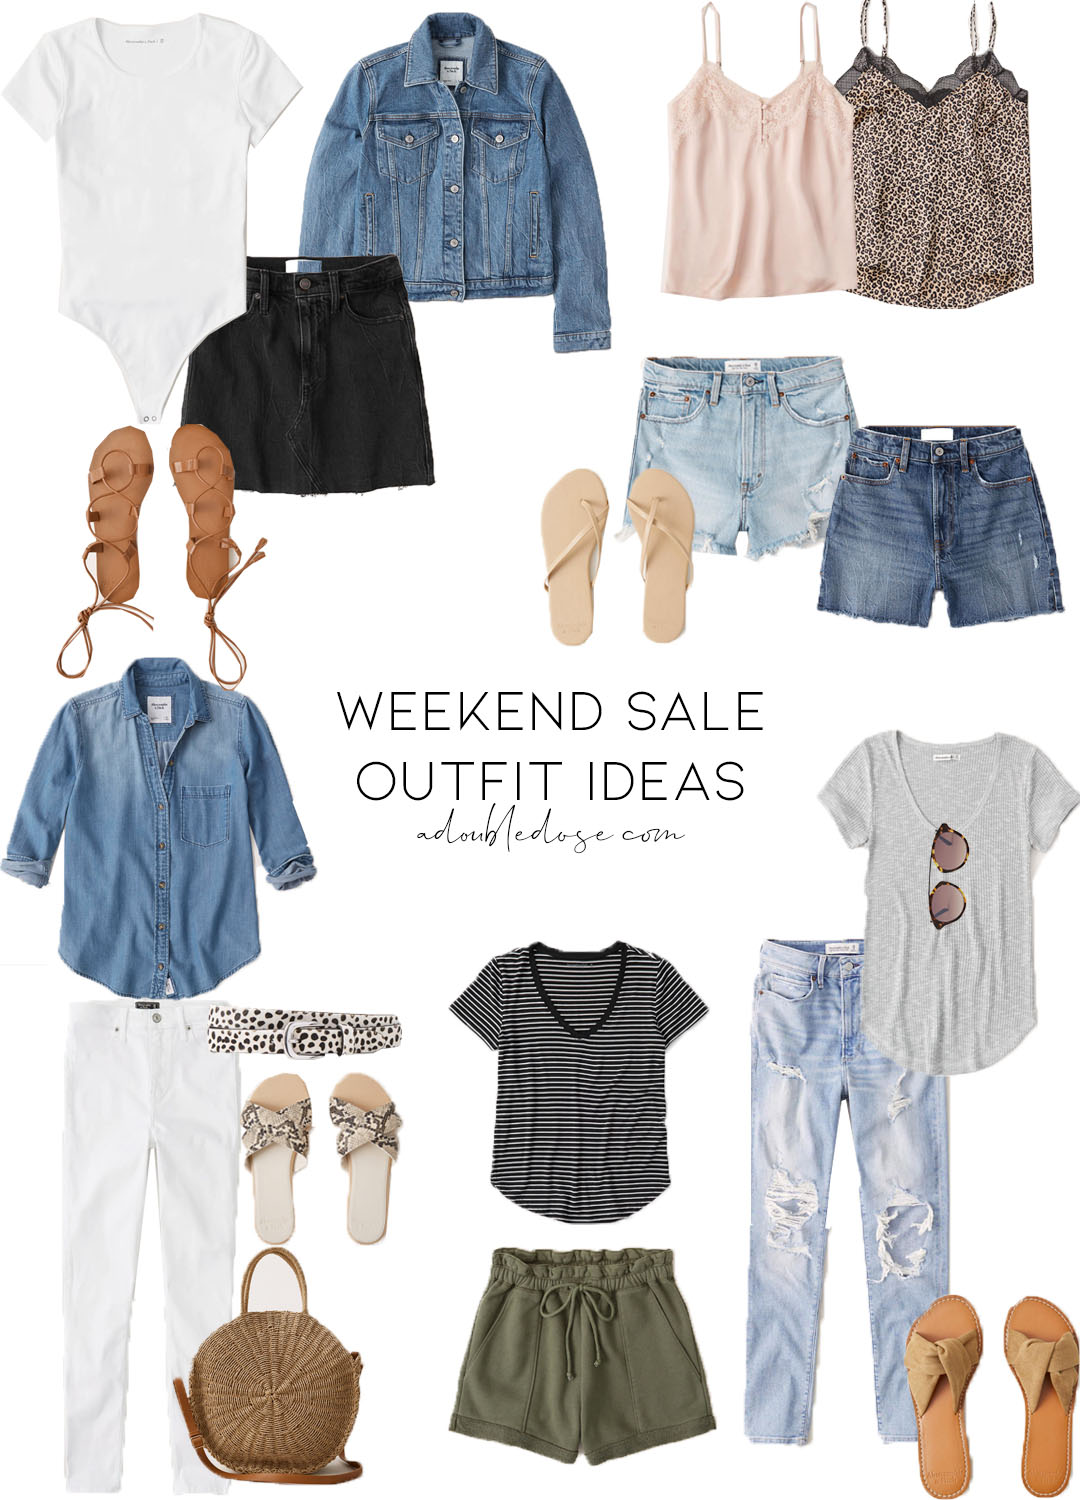 lifestyle and fashion blogger alexis belbel sharing weekend sale finds from abercrombie and nordstrom march 2020   adoubledose.com